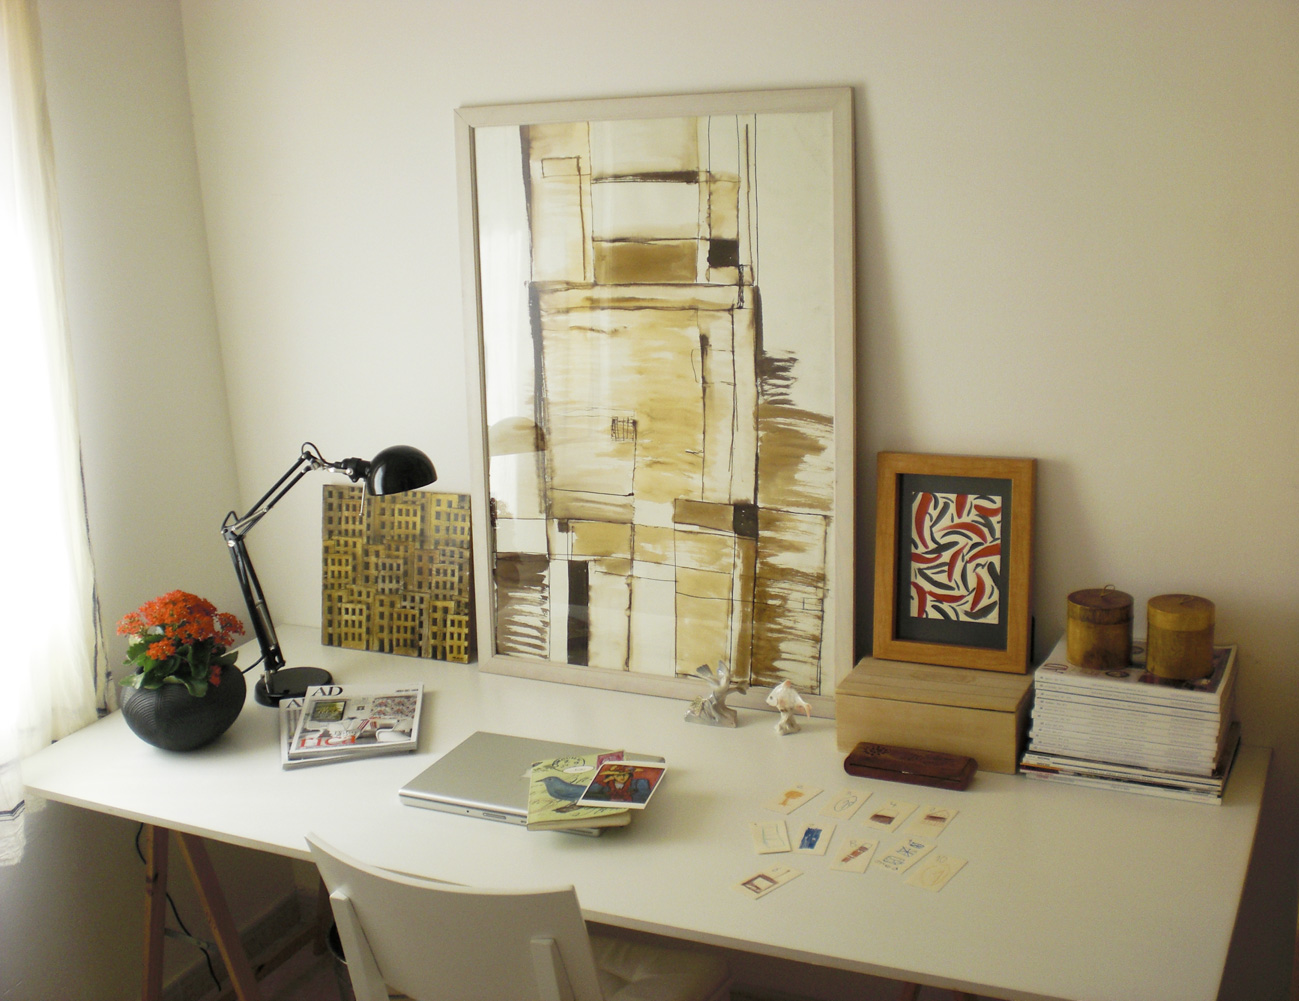 Cuadros Grandes De Ikea.My Work Space Chocolate Creative Sustainable Design And Eco